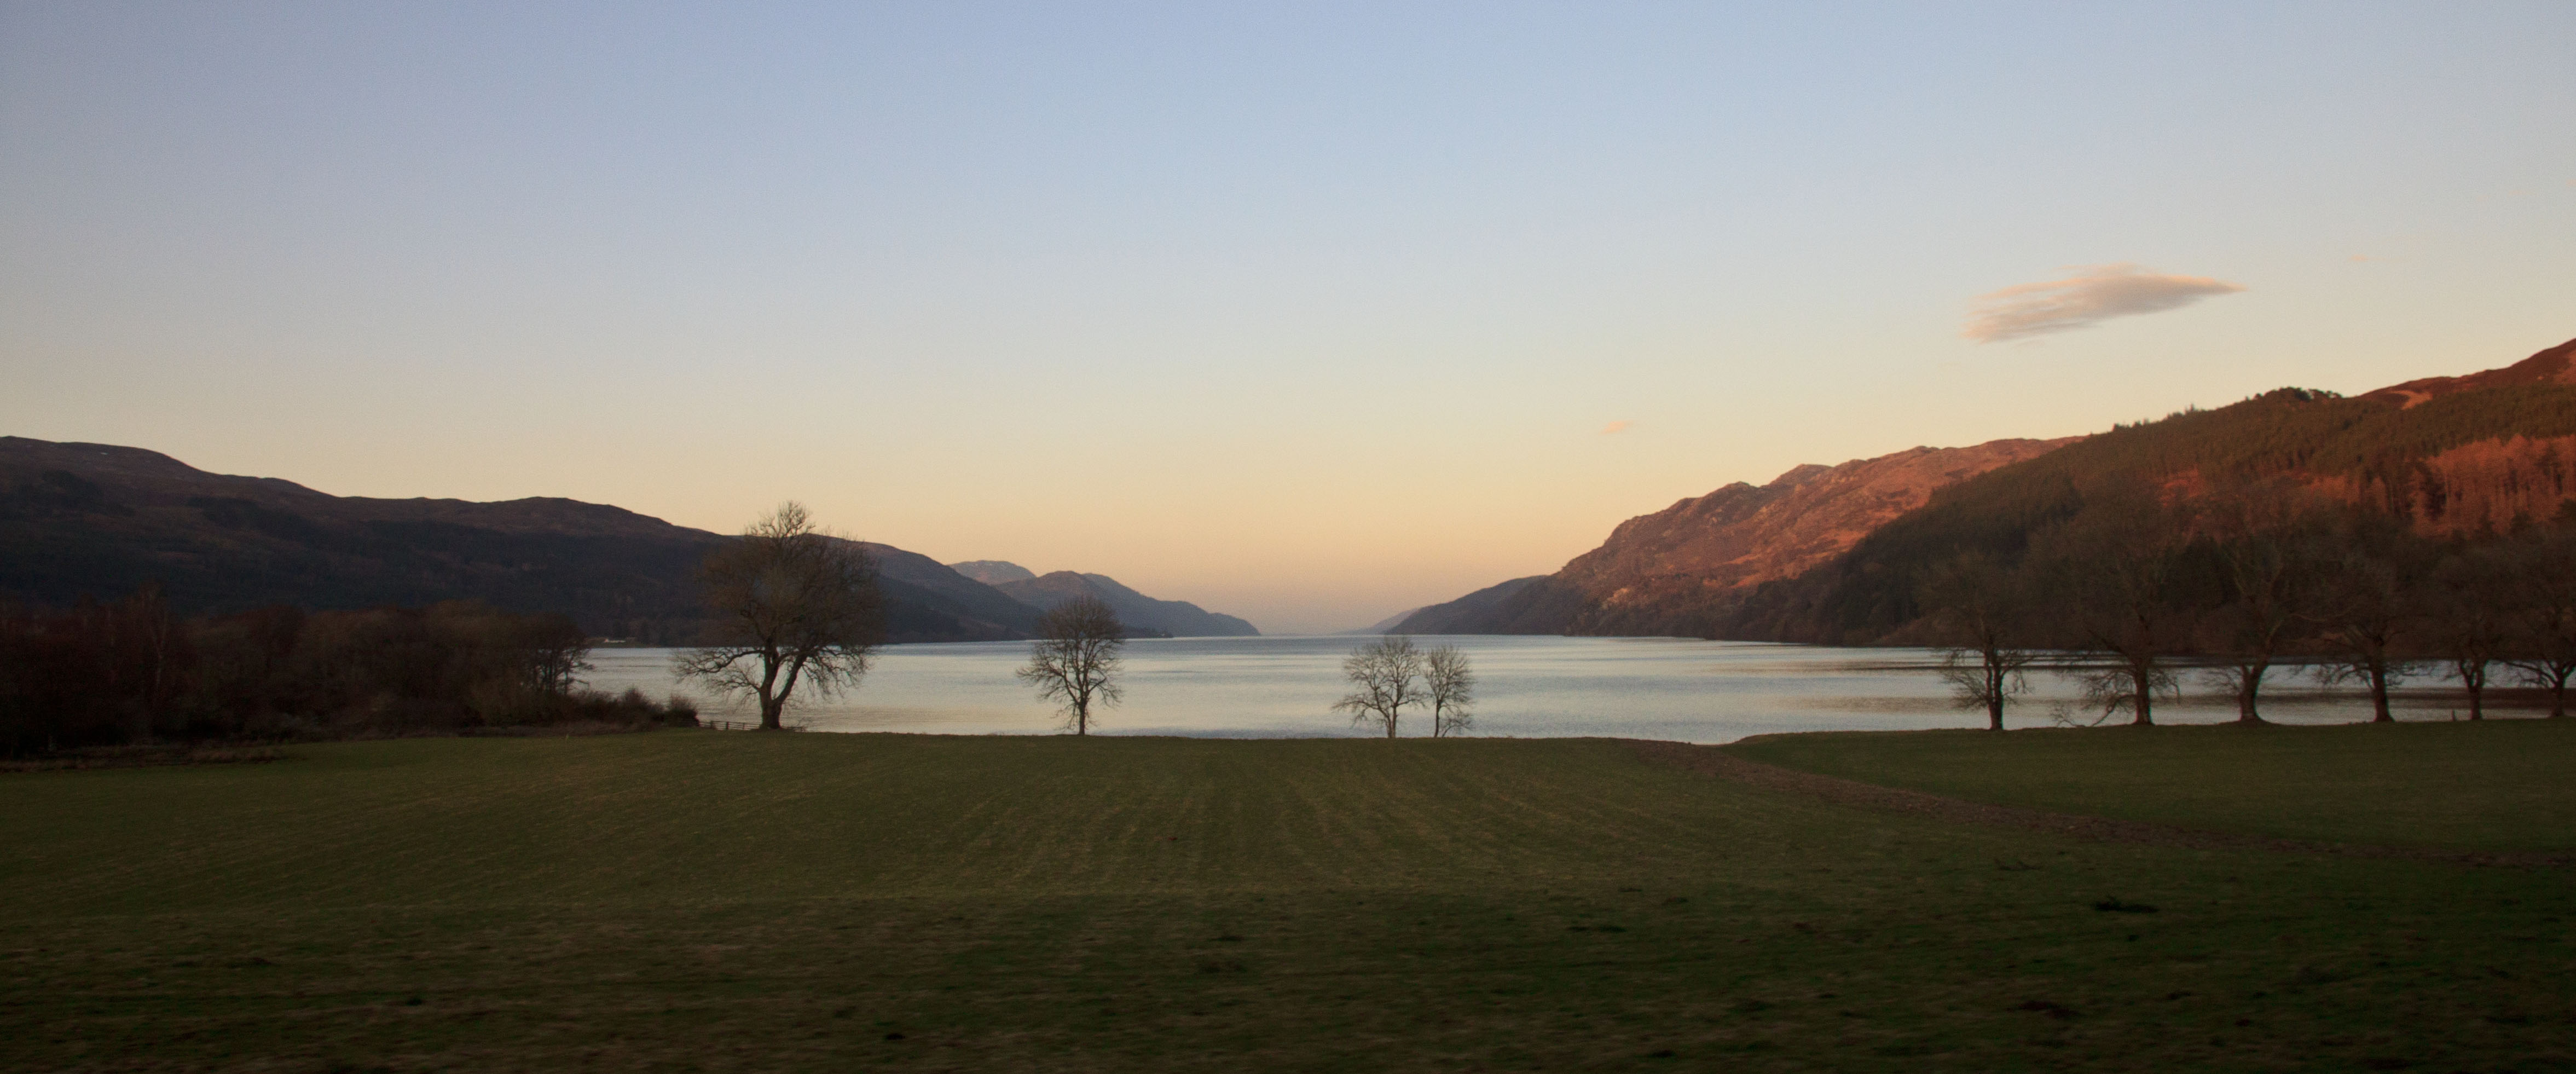 South end of Loch Ness, March 2015.